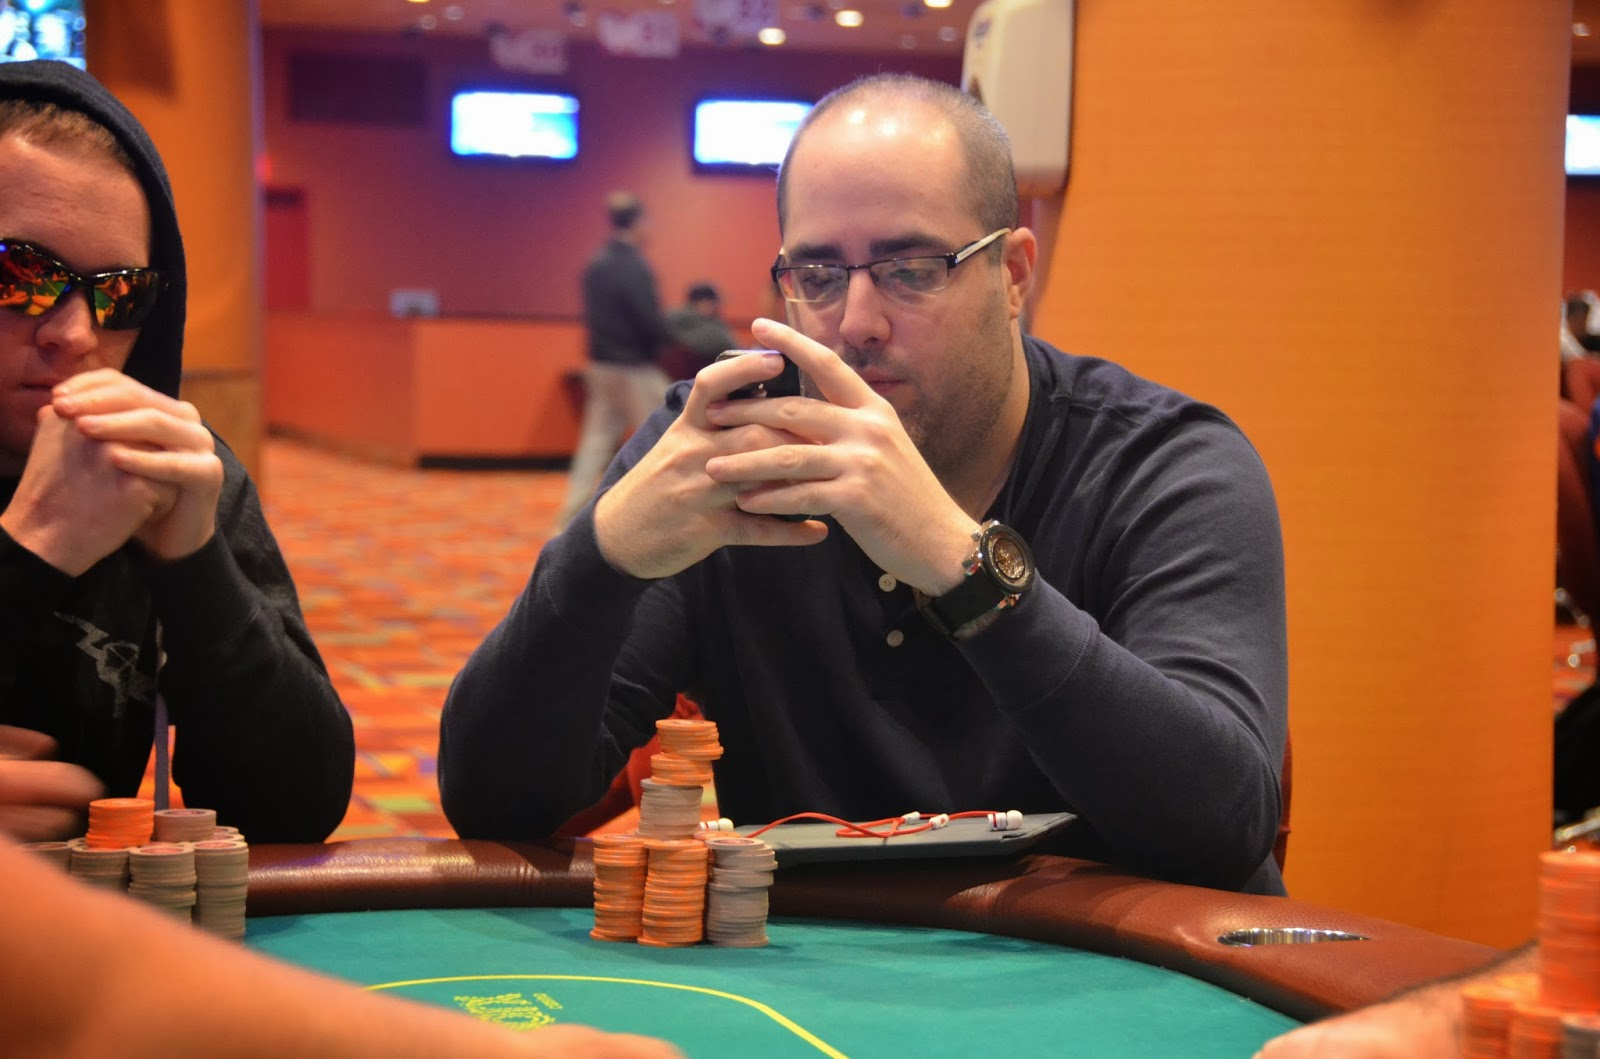 Parx big stax iv big stax 1000 day 3 16th place jaffee 5 153 for Parx poker room live game report